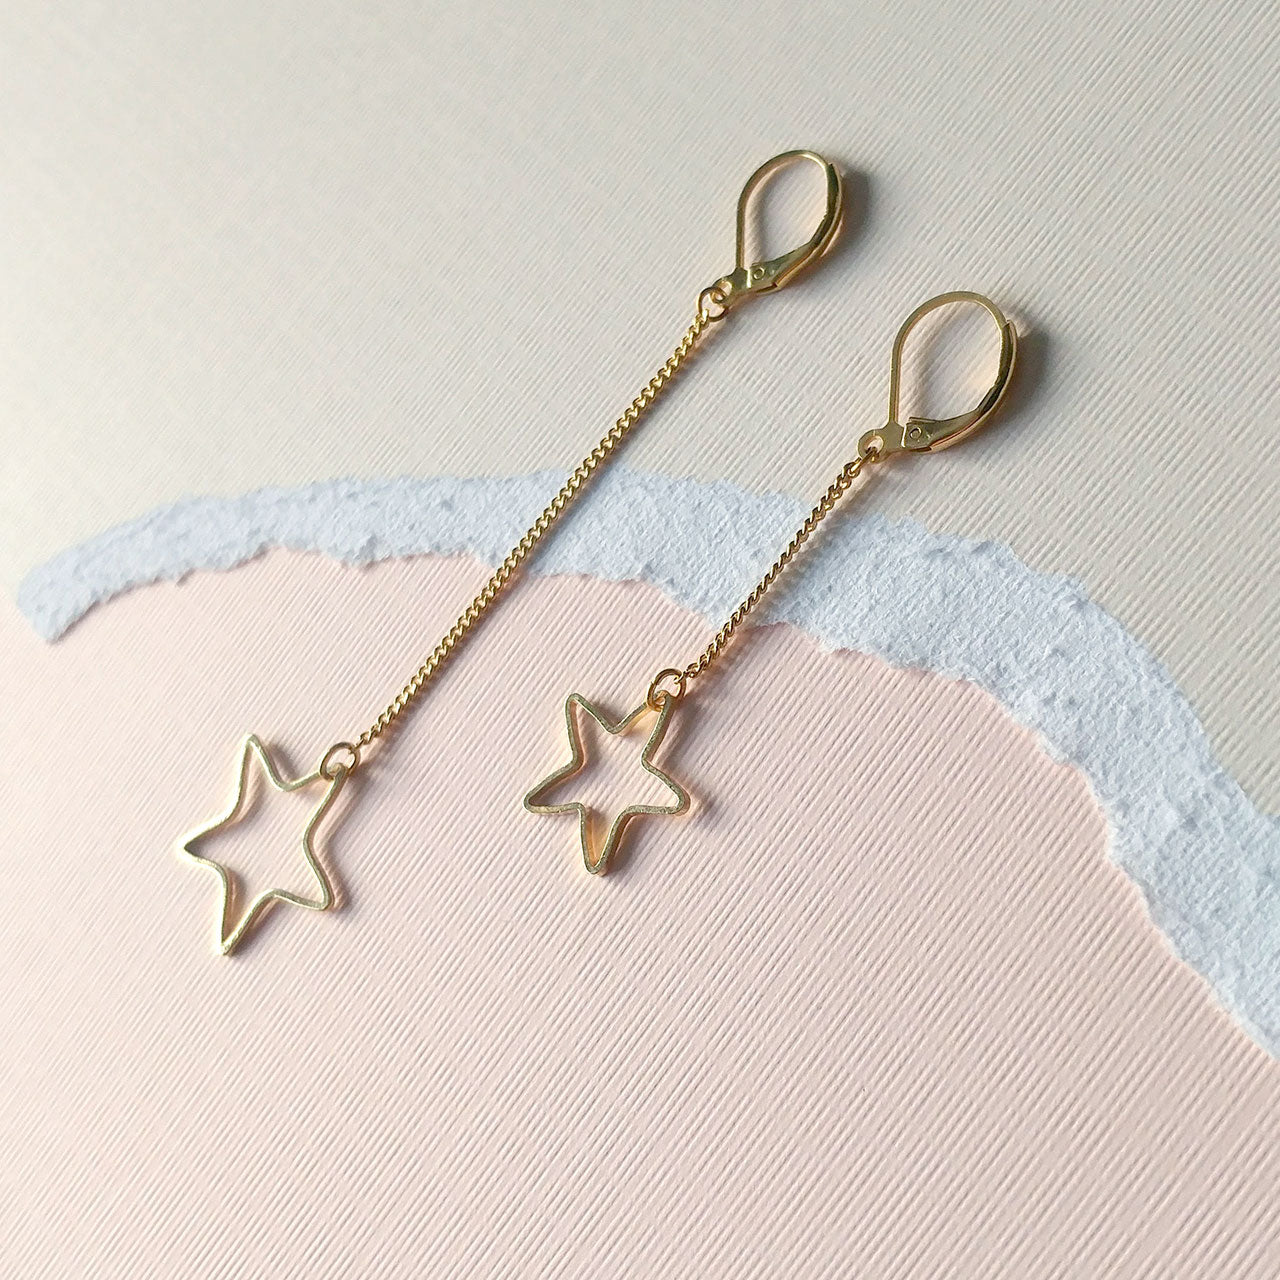 Mismatched earrings stars